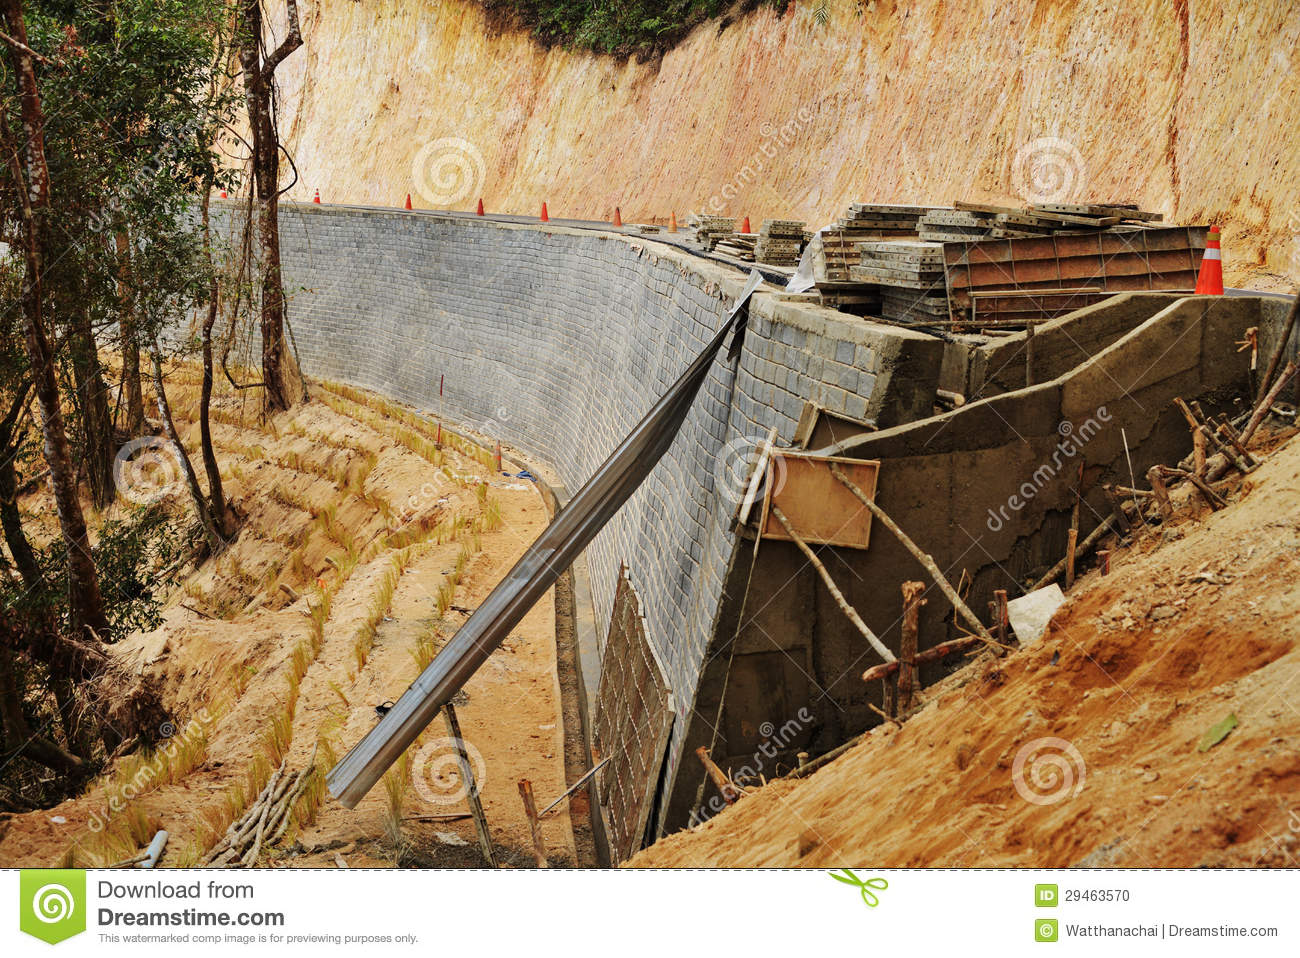 how to prevent landslide Landslides can cause flooding by forming landslide dams that block valleys and stream channels, allowing large amounts of water to back up this causes backwater flooding and, if the dam fails, subsequent downstream flooding.